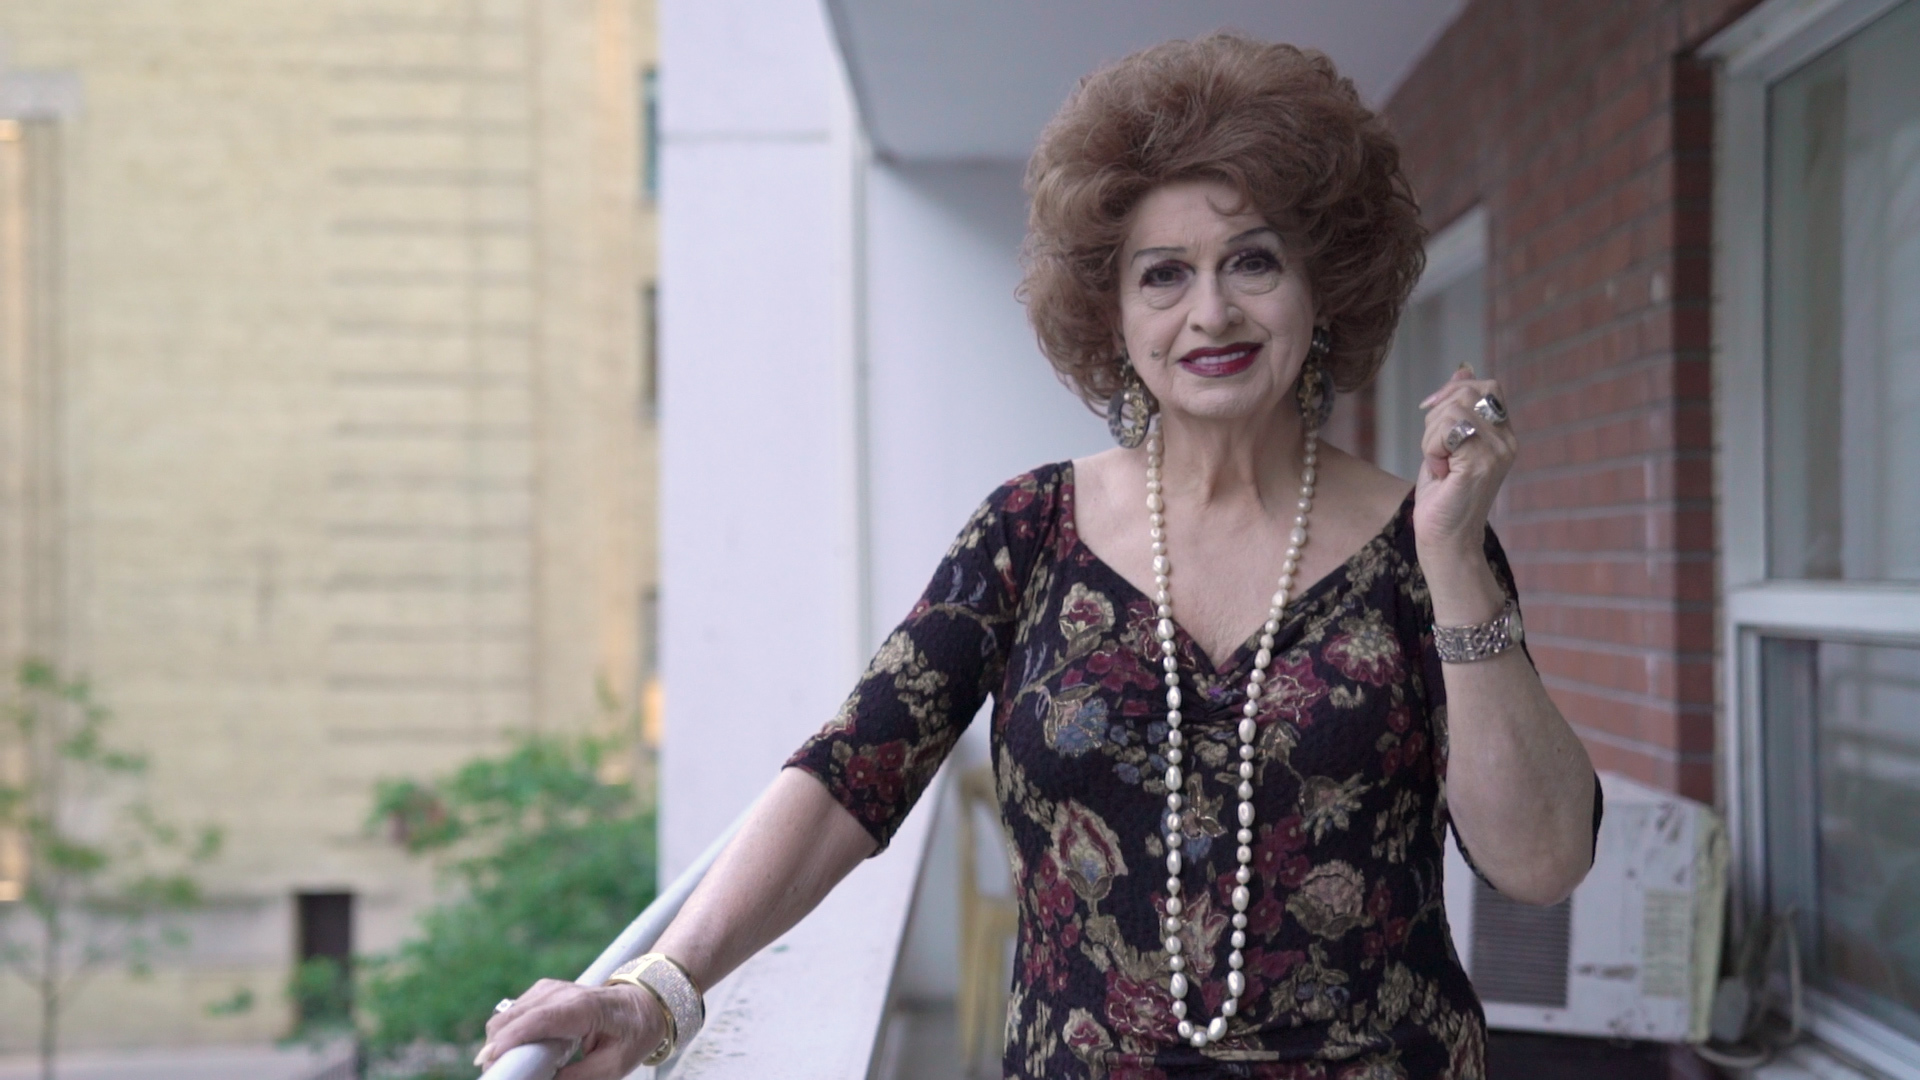 88-year-old Drag Queen, Michelle DuBarry, Dreams of Appearing on Ellen Show